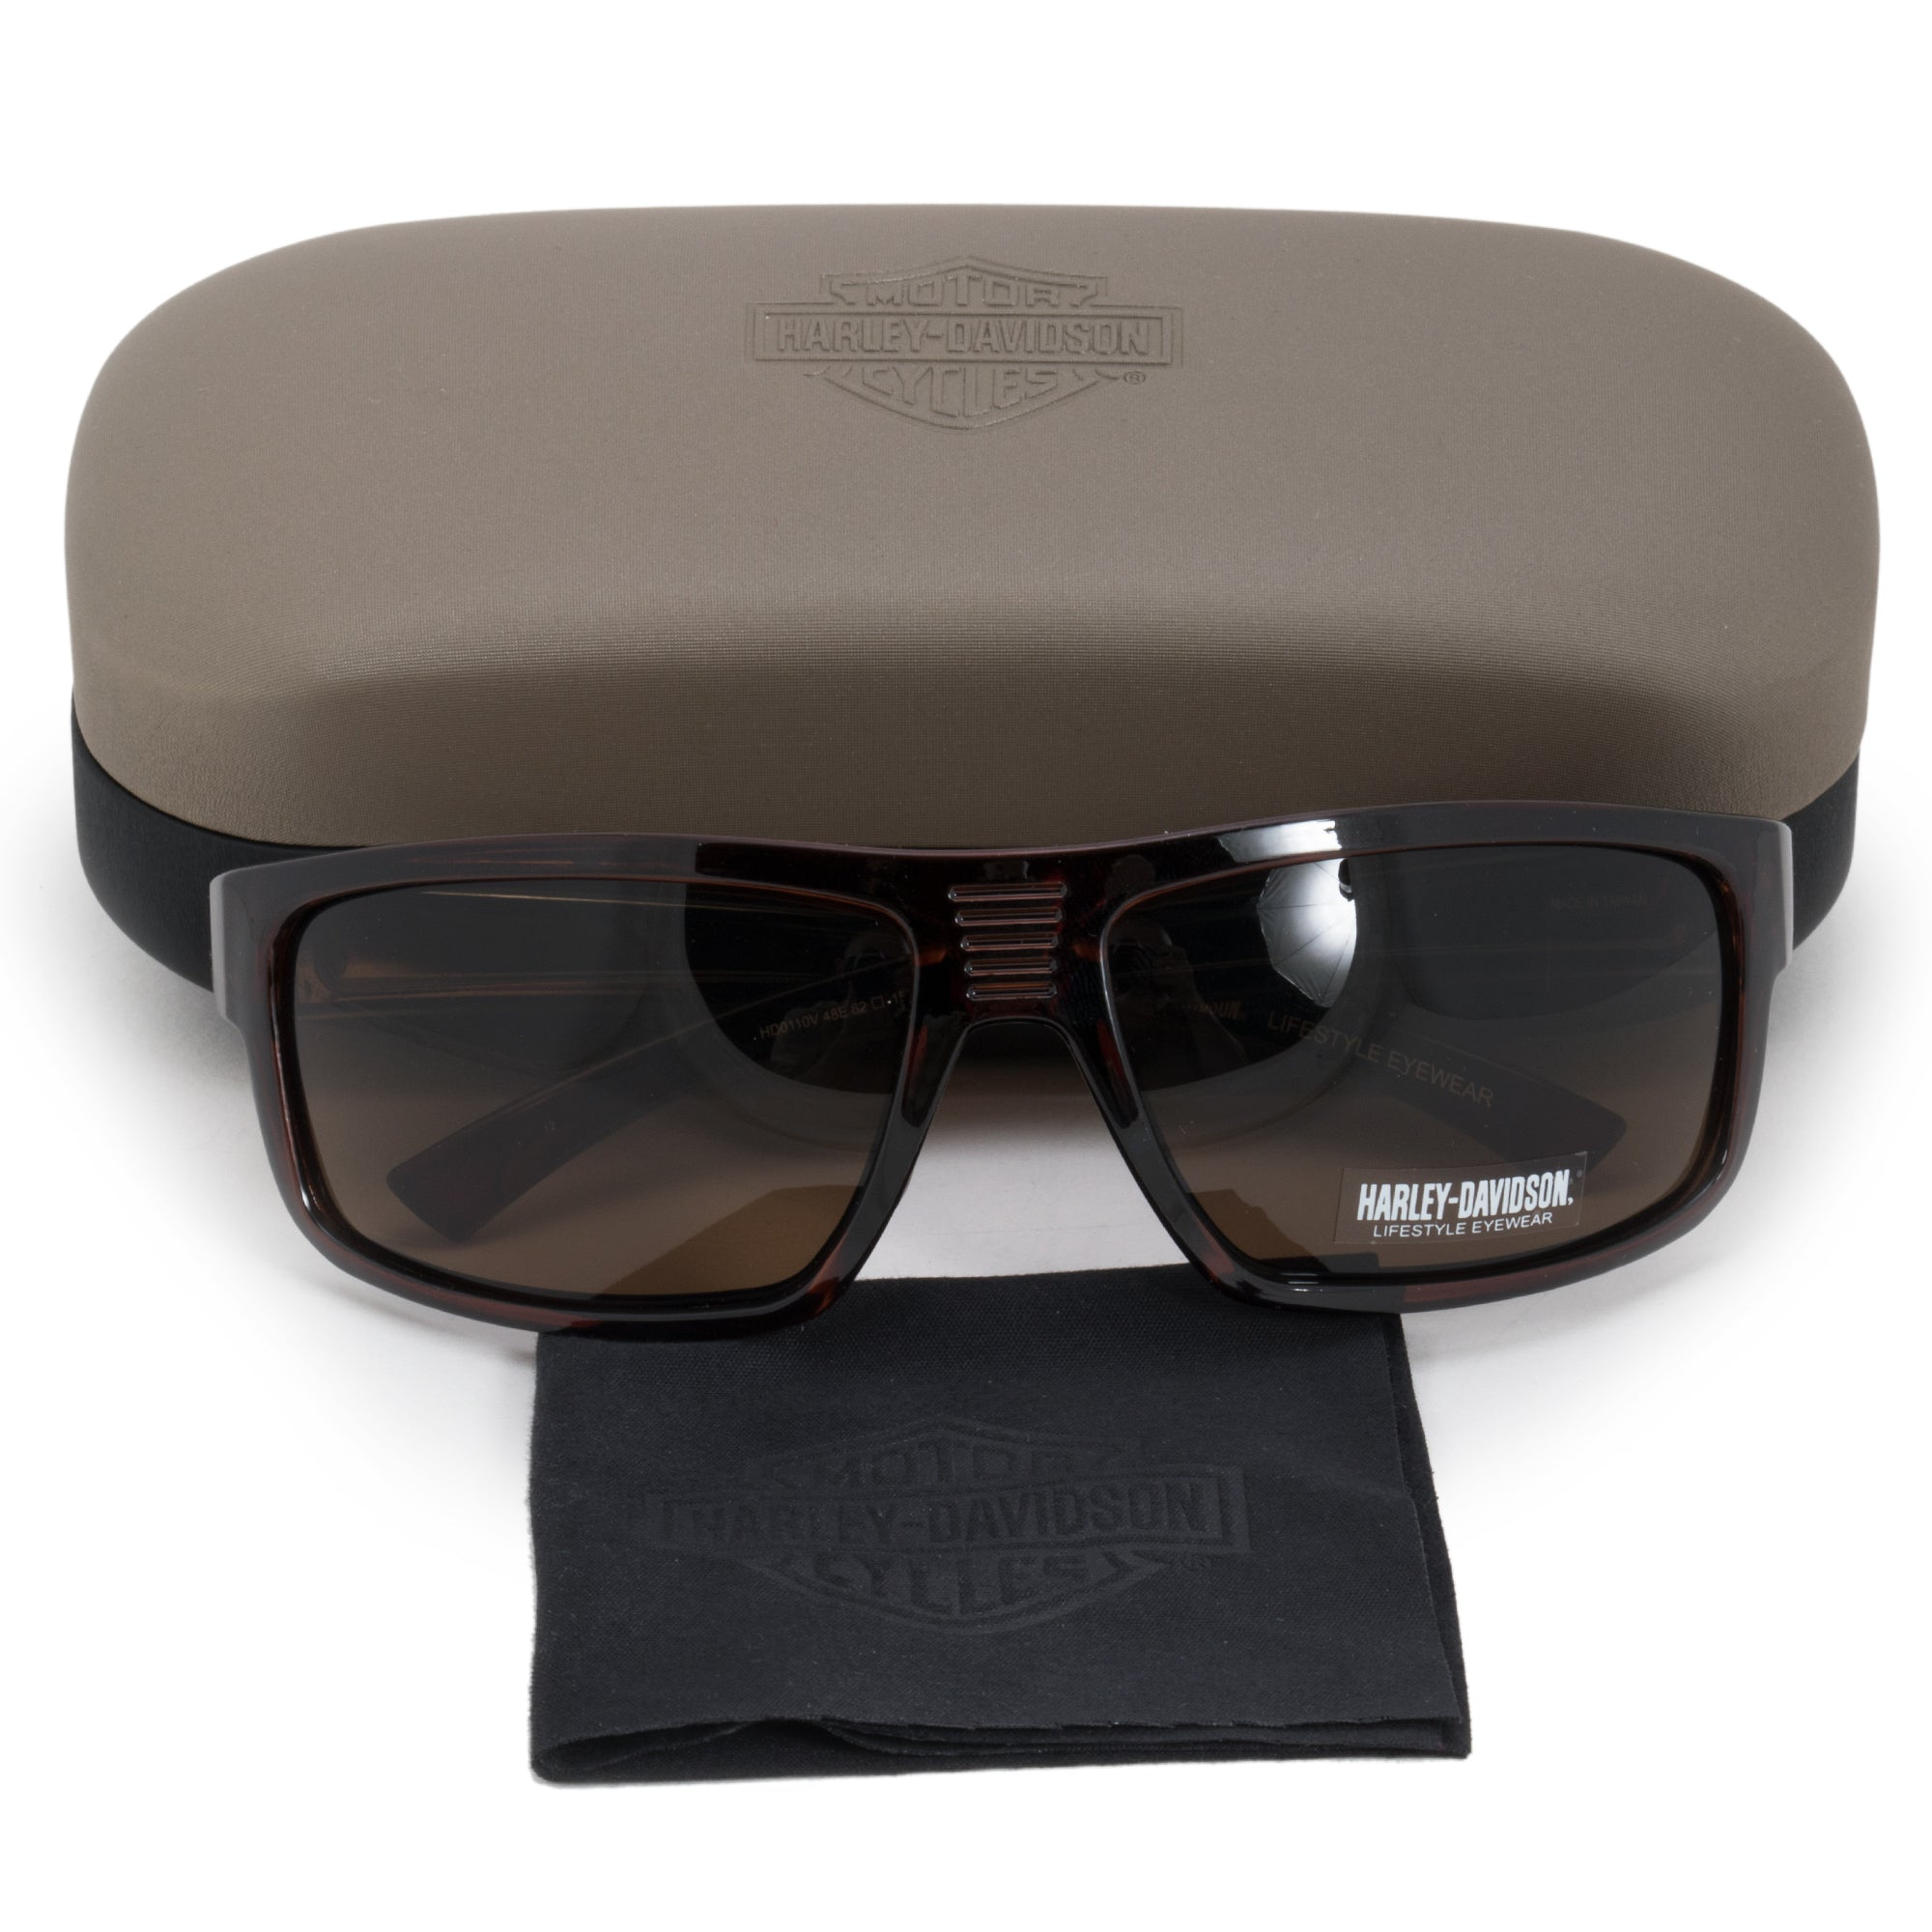 Harley Davidson Sports Sunglasses HDV0110 48E 62